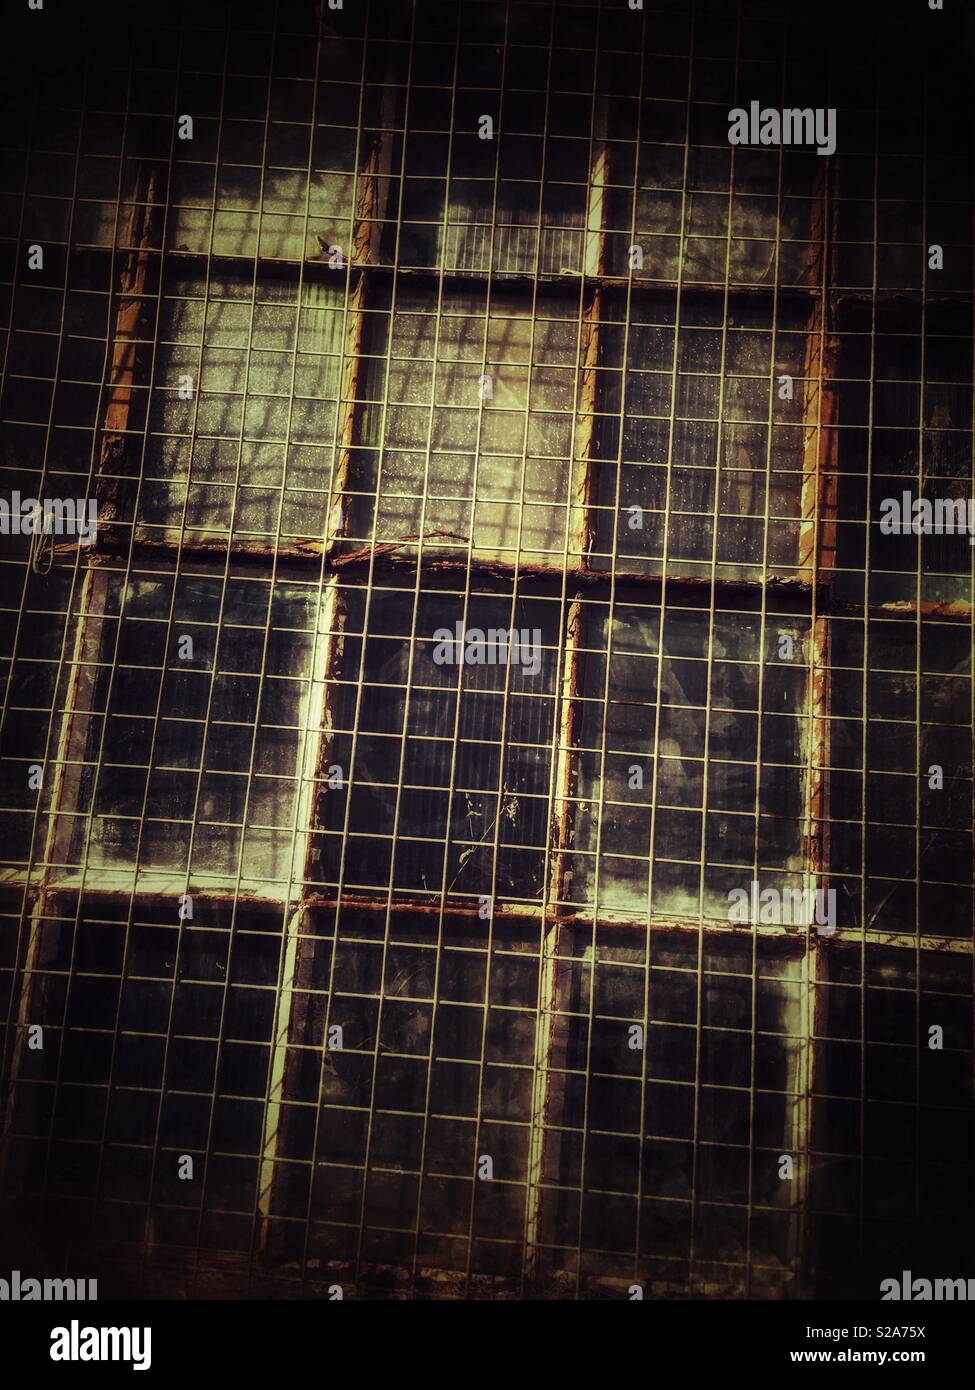 Metal grid in front of a multi sectioned glass window, at an angle. Looks vintage. - Stock Image